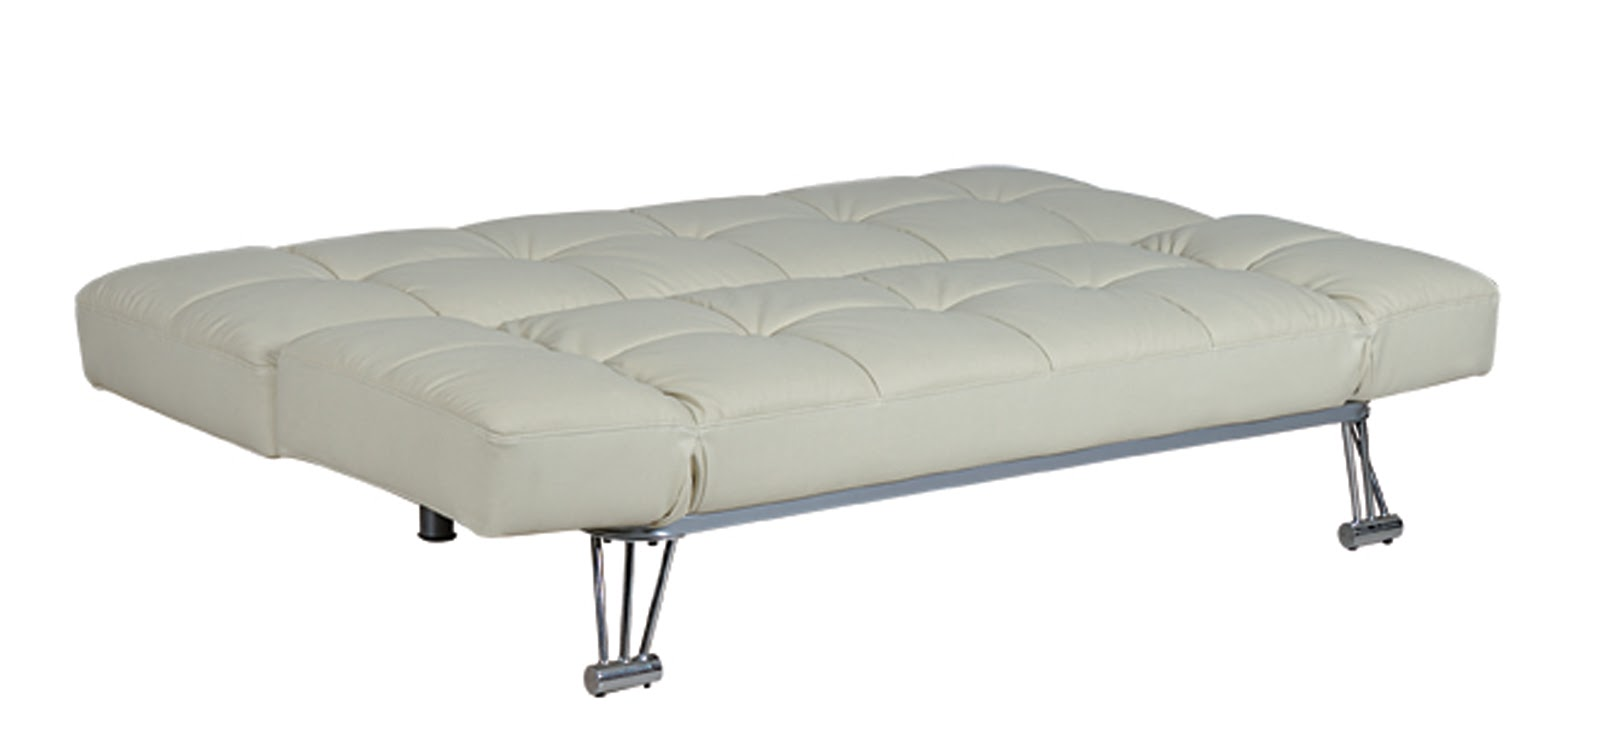 Sof cama dream mesas y sillas para vivir for Estructura sofa cama